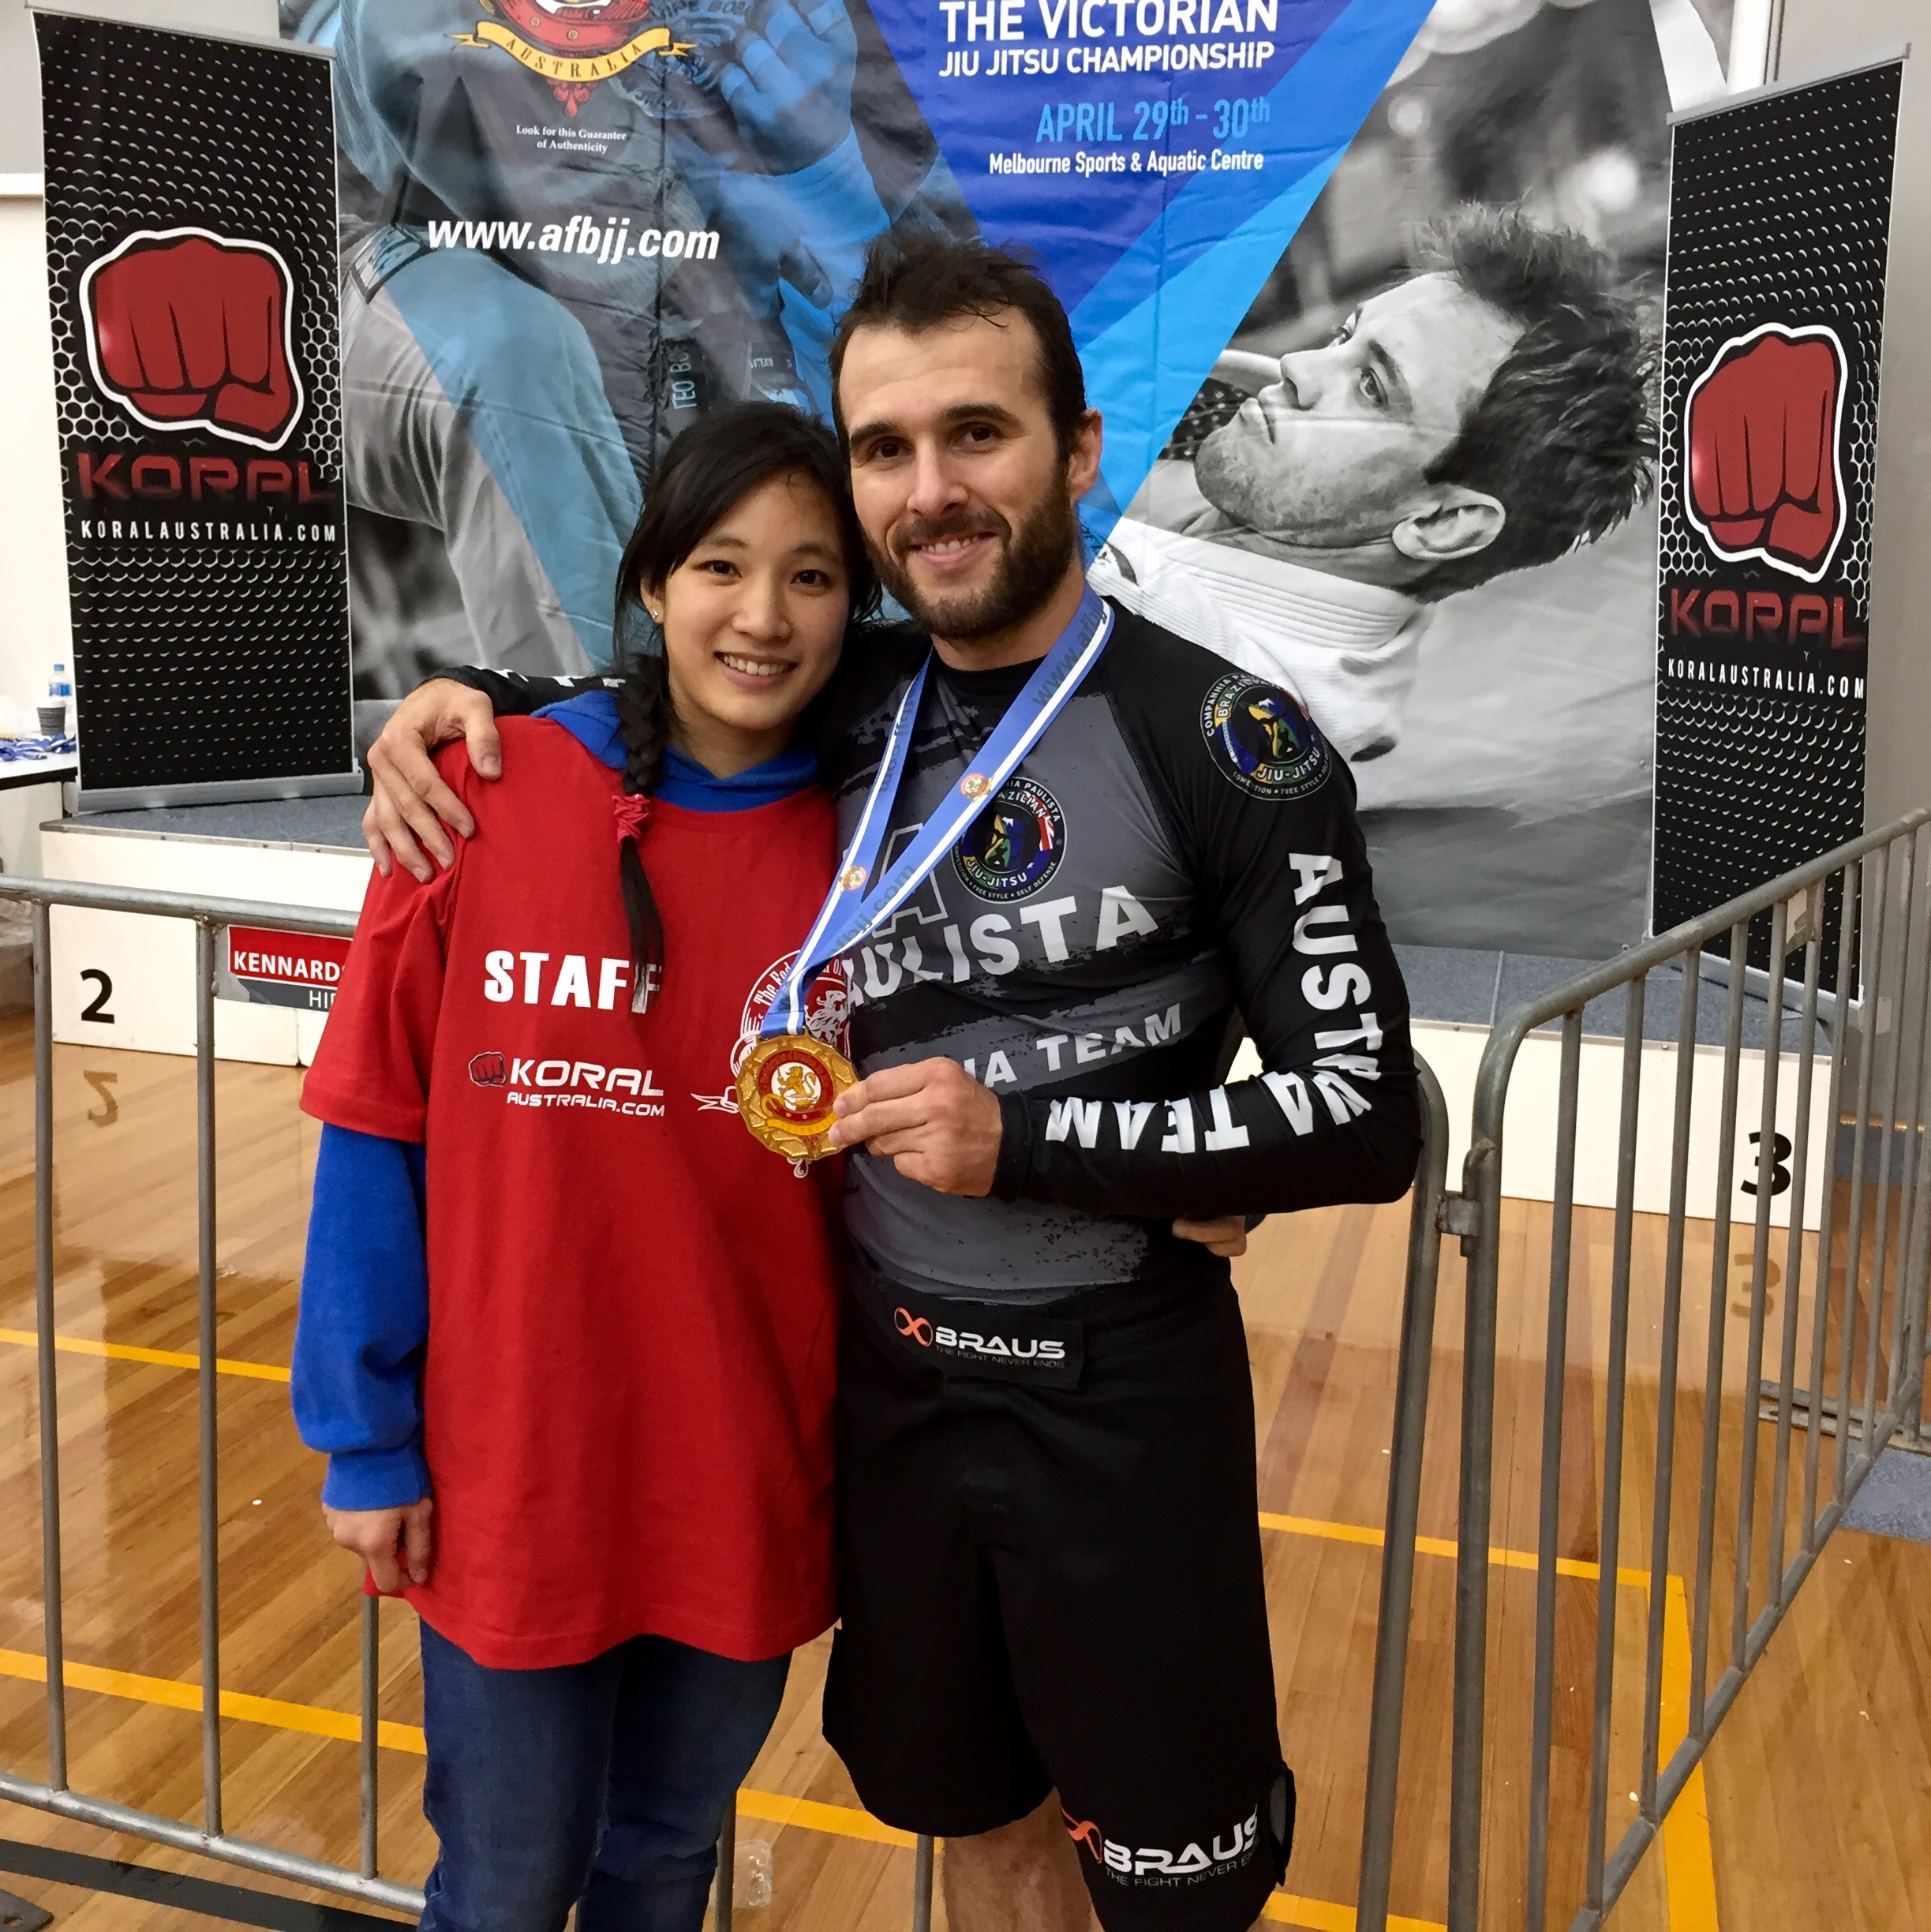 Great medal haul for Coach Marcel Leteri Sasso de Oliveira and Cia Paulista Brunswick at the 2017 Victorian Jiu Jitsu Championship!